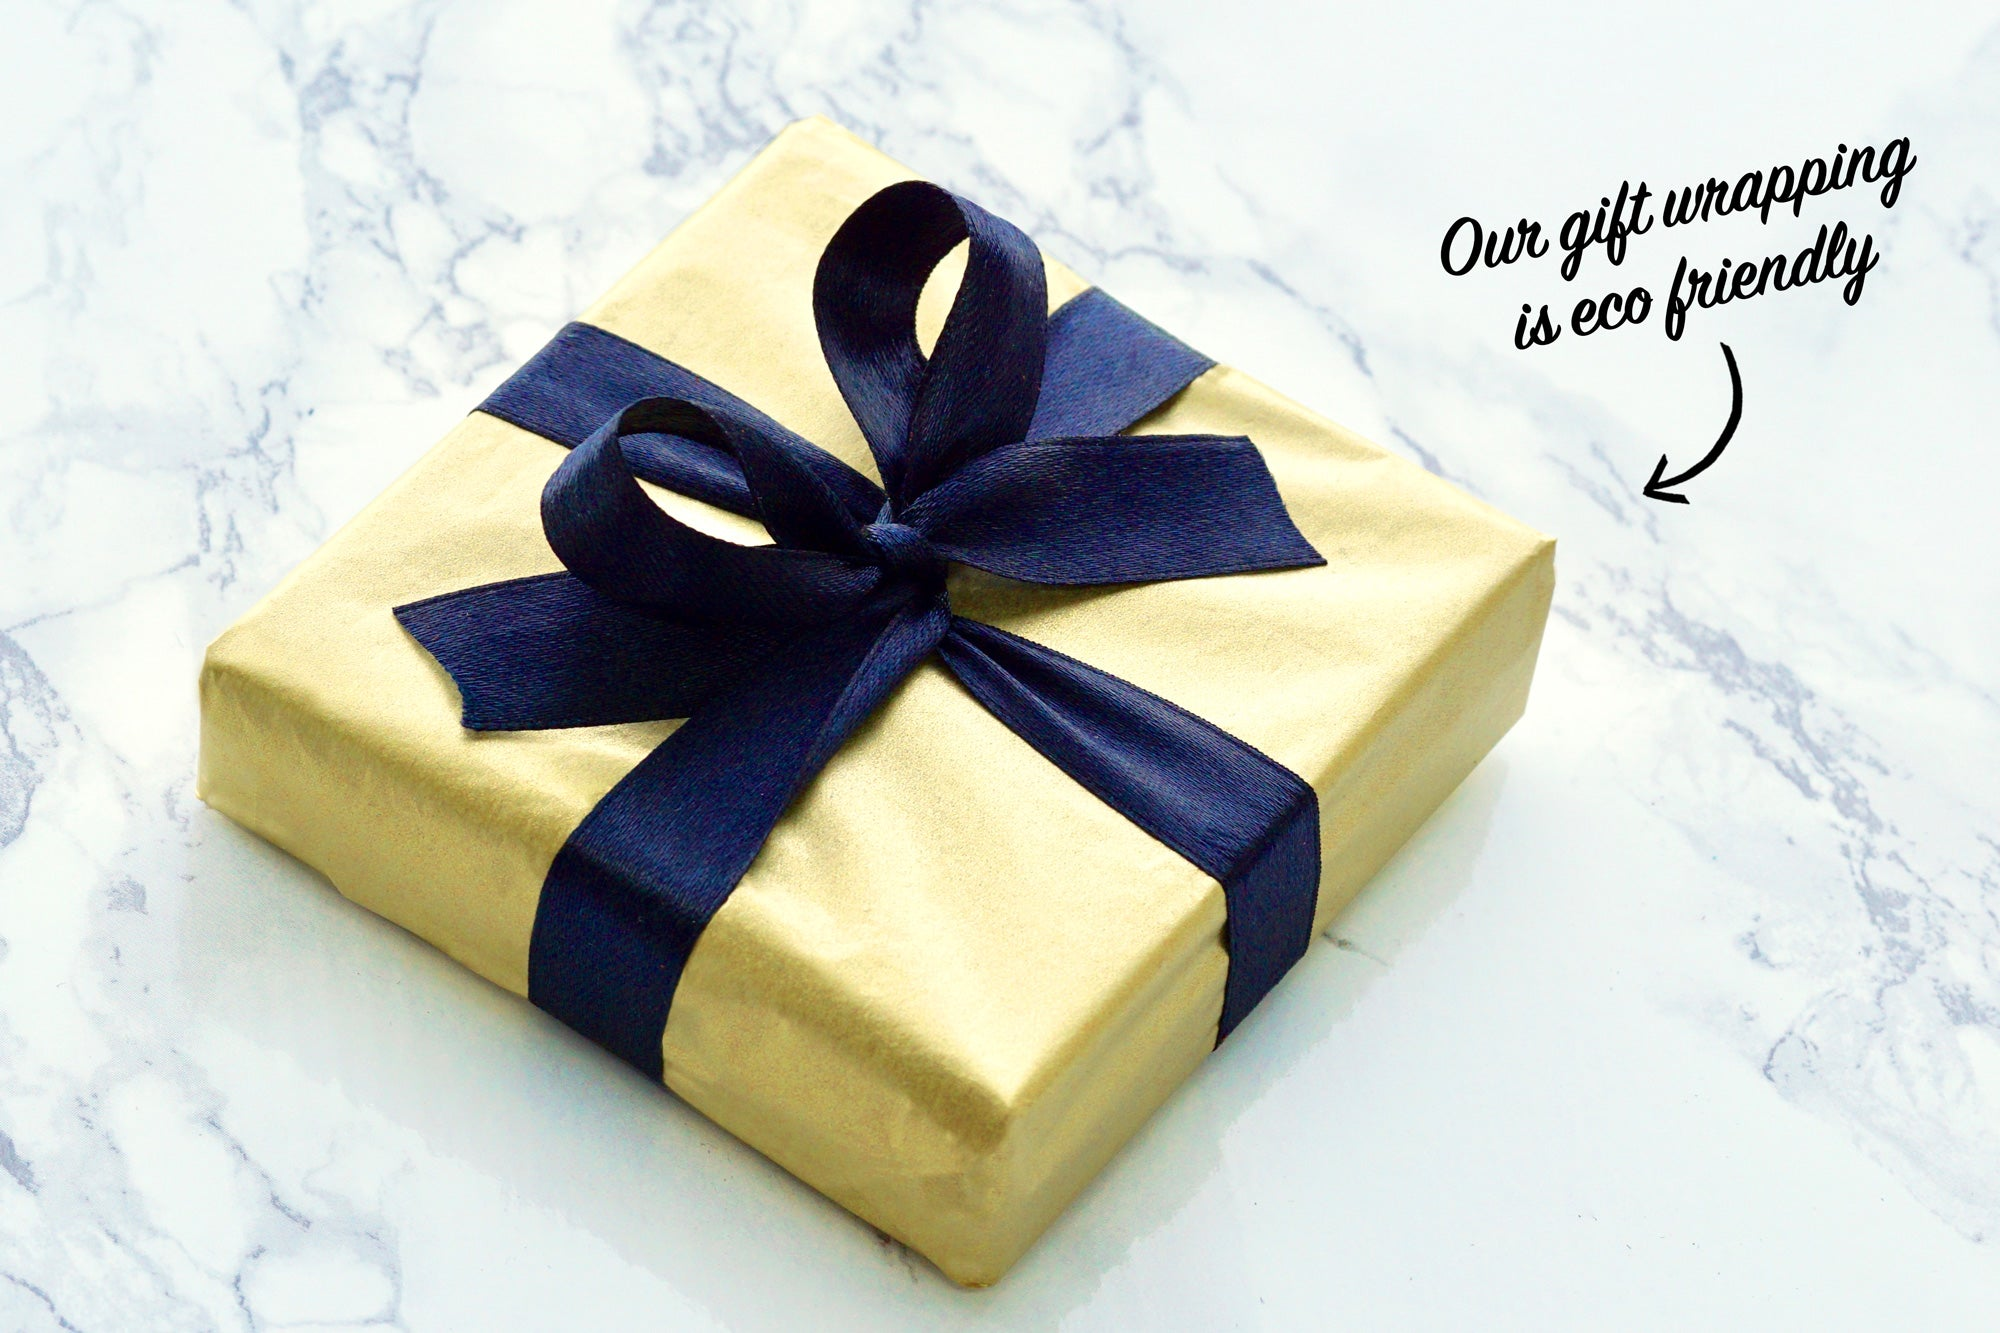 Our gift wrapping is eco friendly too